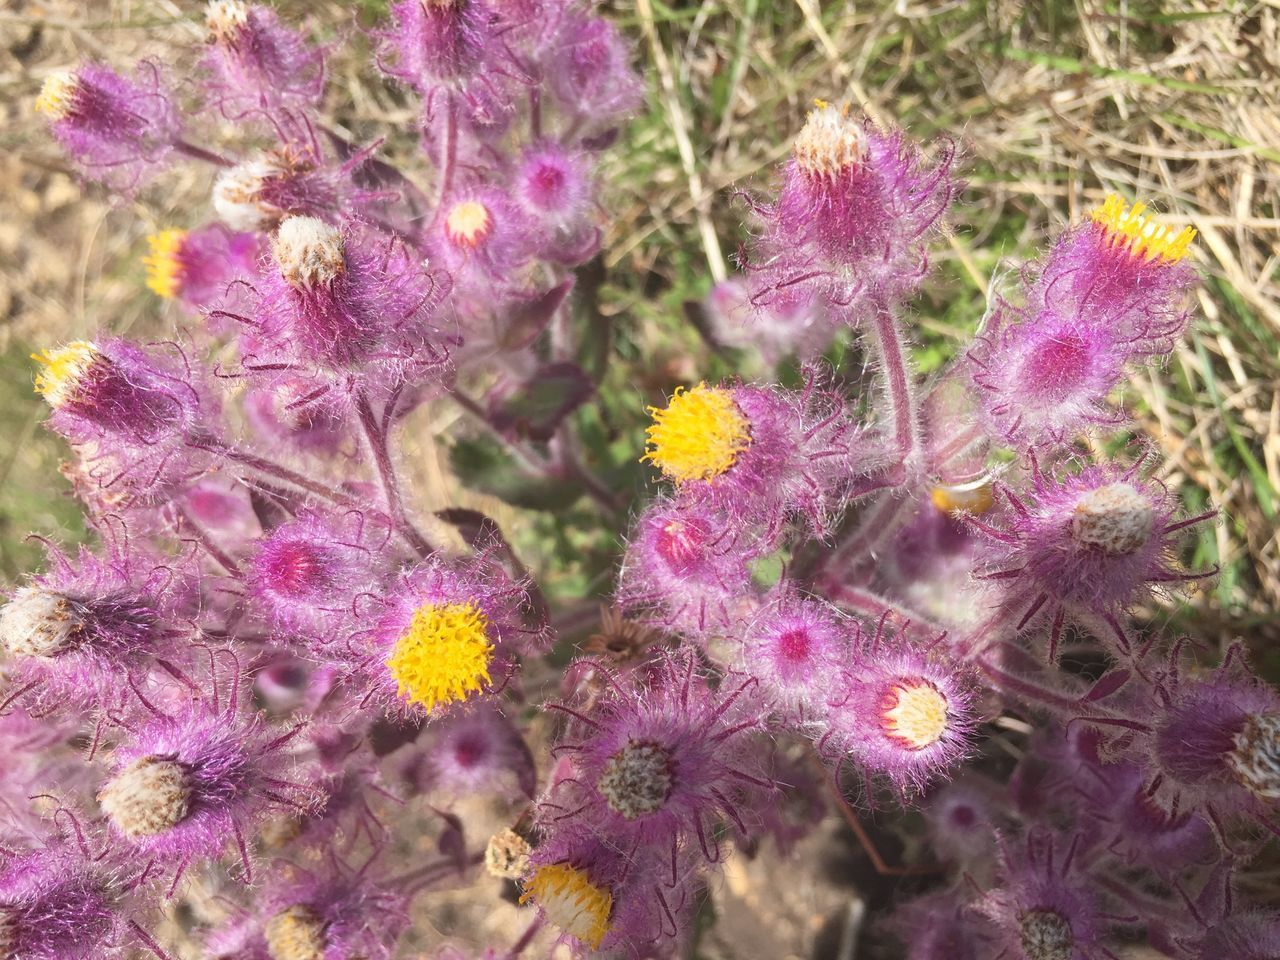 flower, purple, plant, nature, fragility, beauty in nature, growth, no people, flower head, day, outdoors, blooming, close-up, freshness, undersea